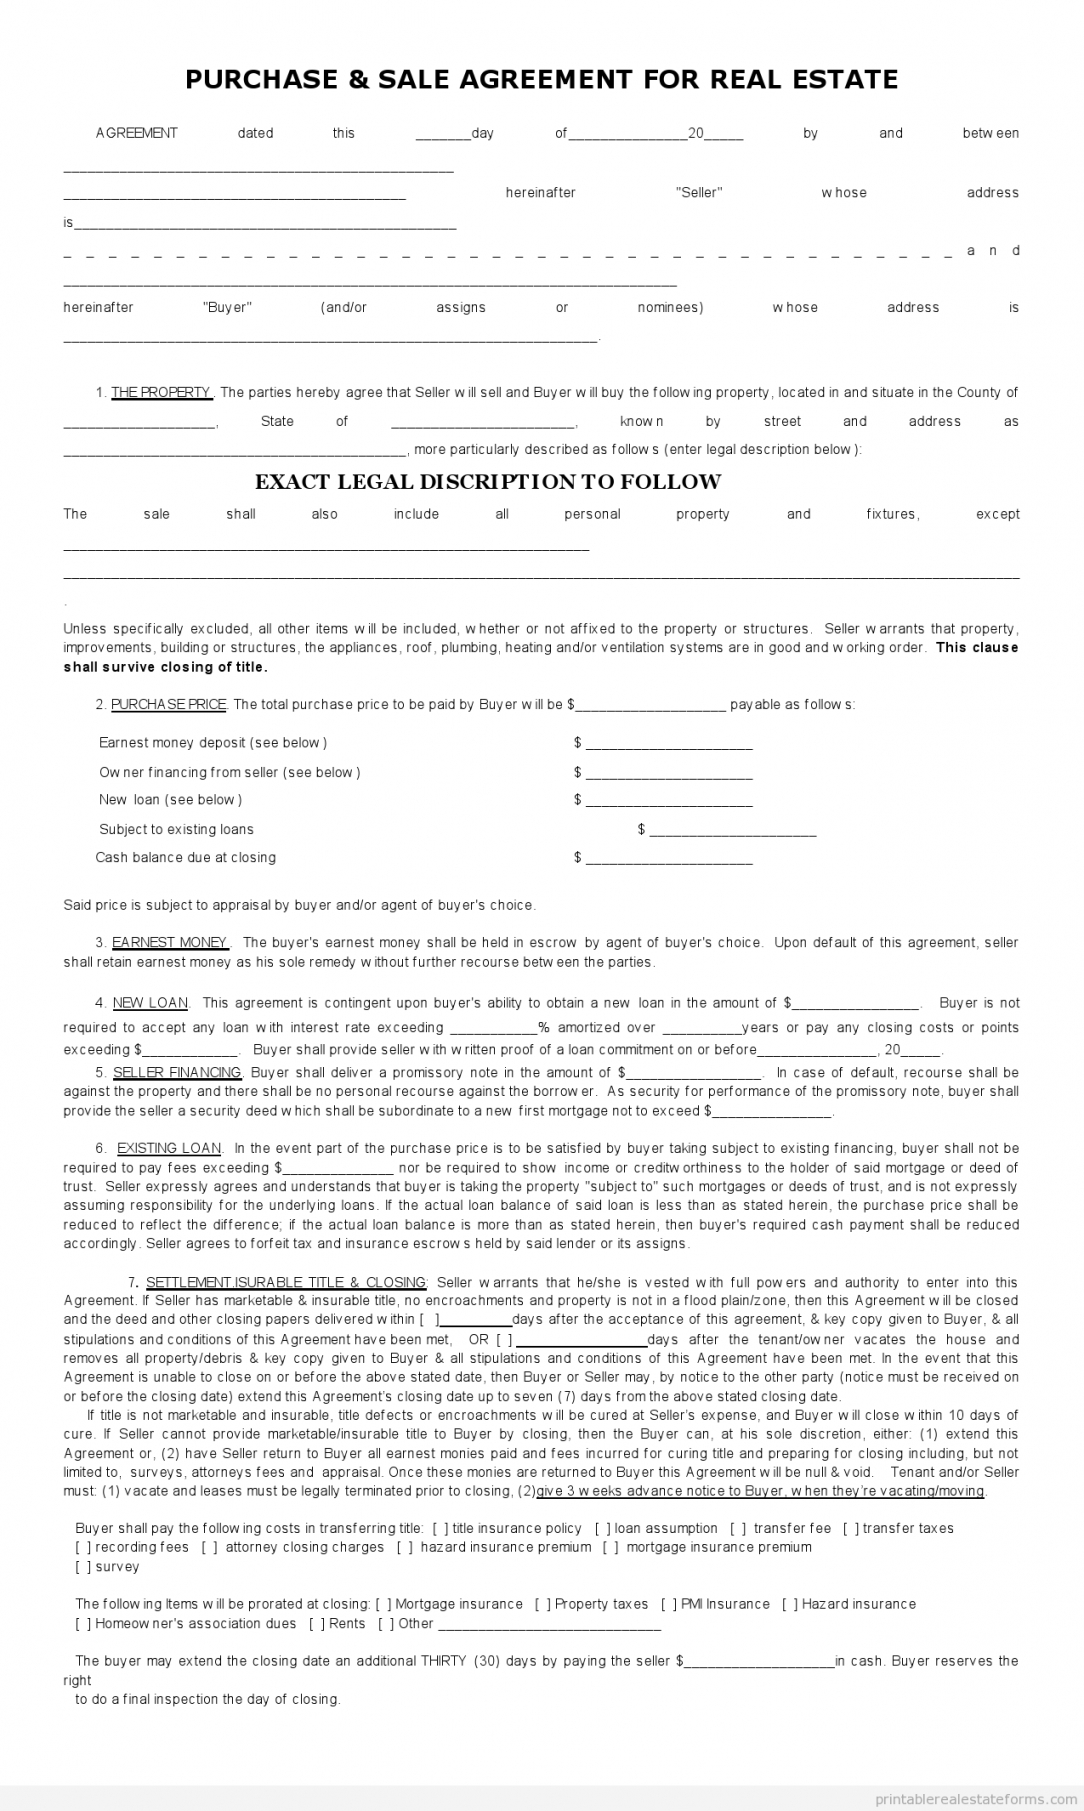 printable sales contract for buying subject to template 2015 sales contractor agreement template